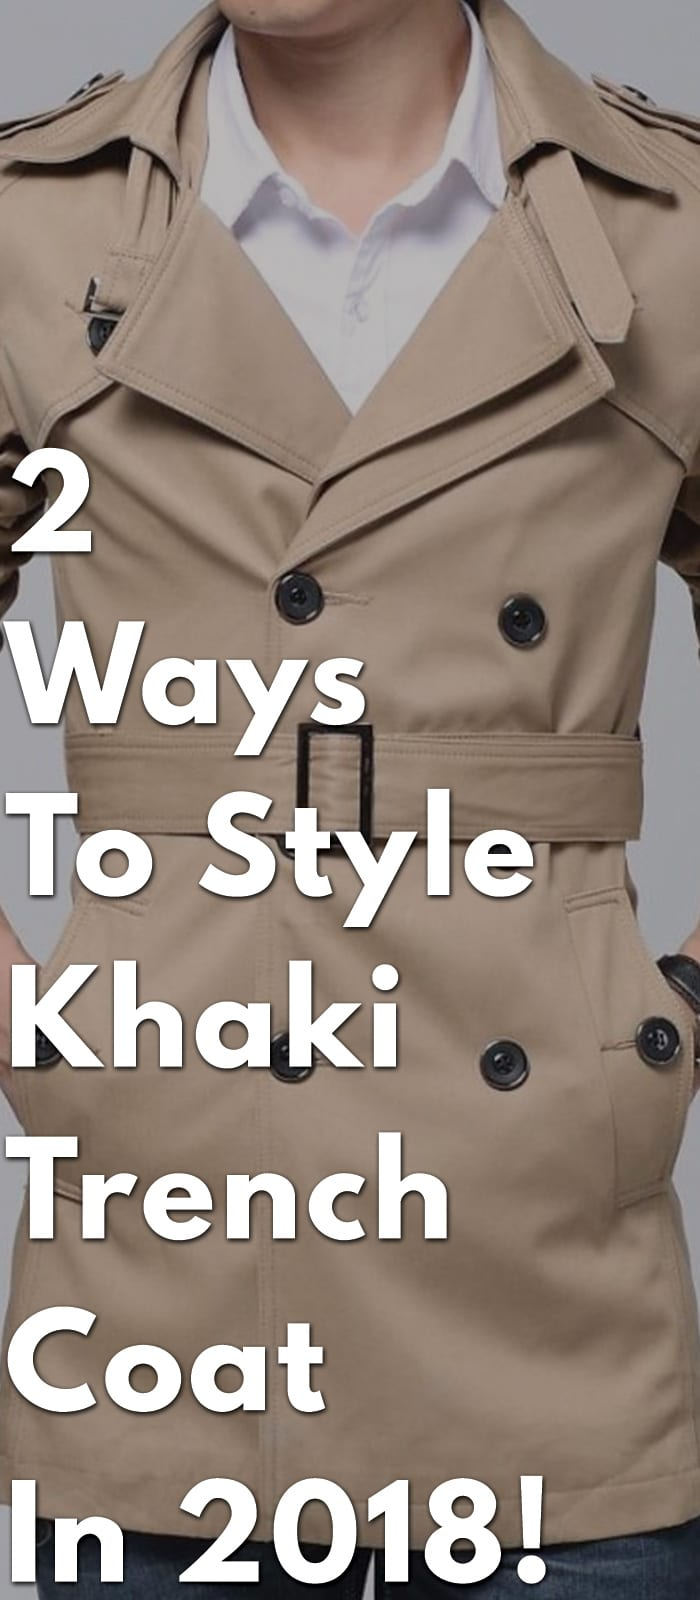 2-Ways-To-Style-Khaki-Trench-Coat-In-2018!